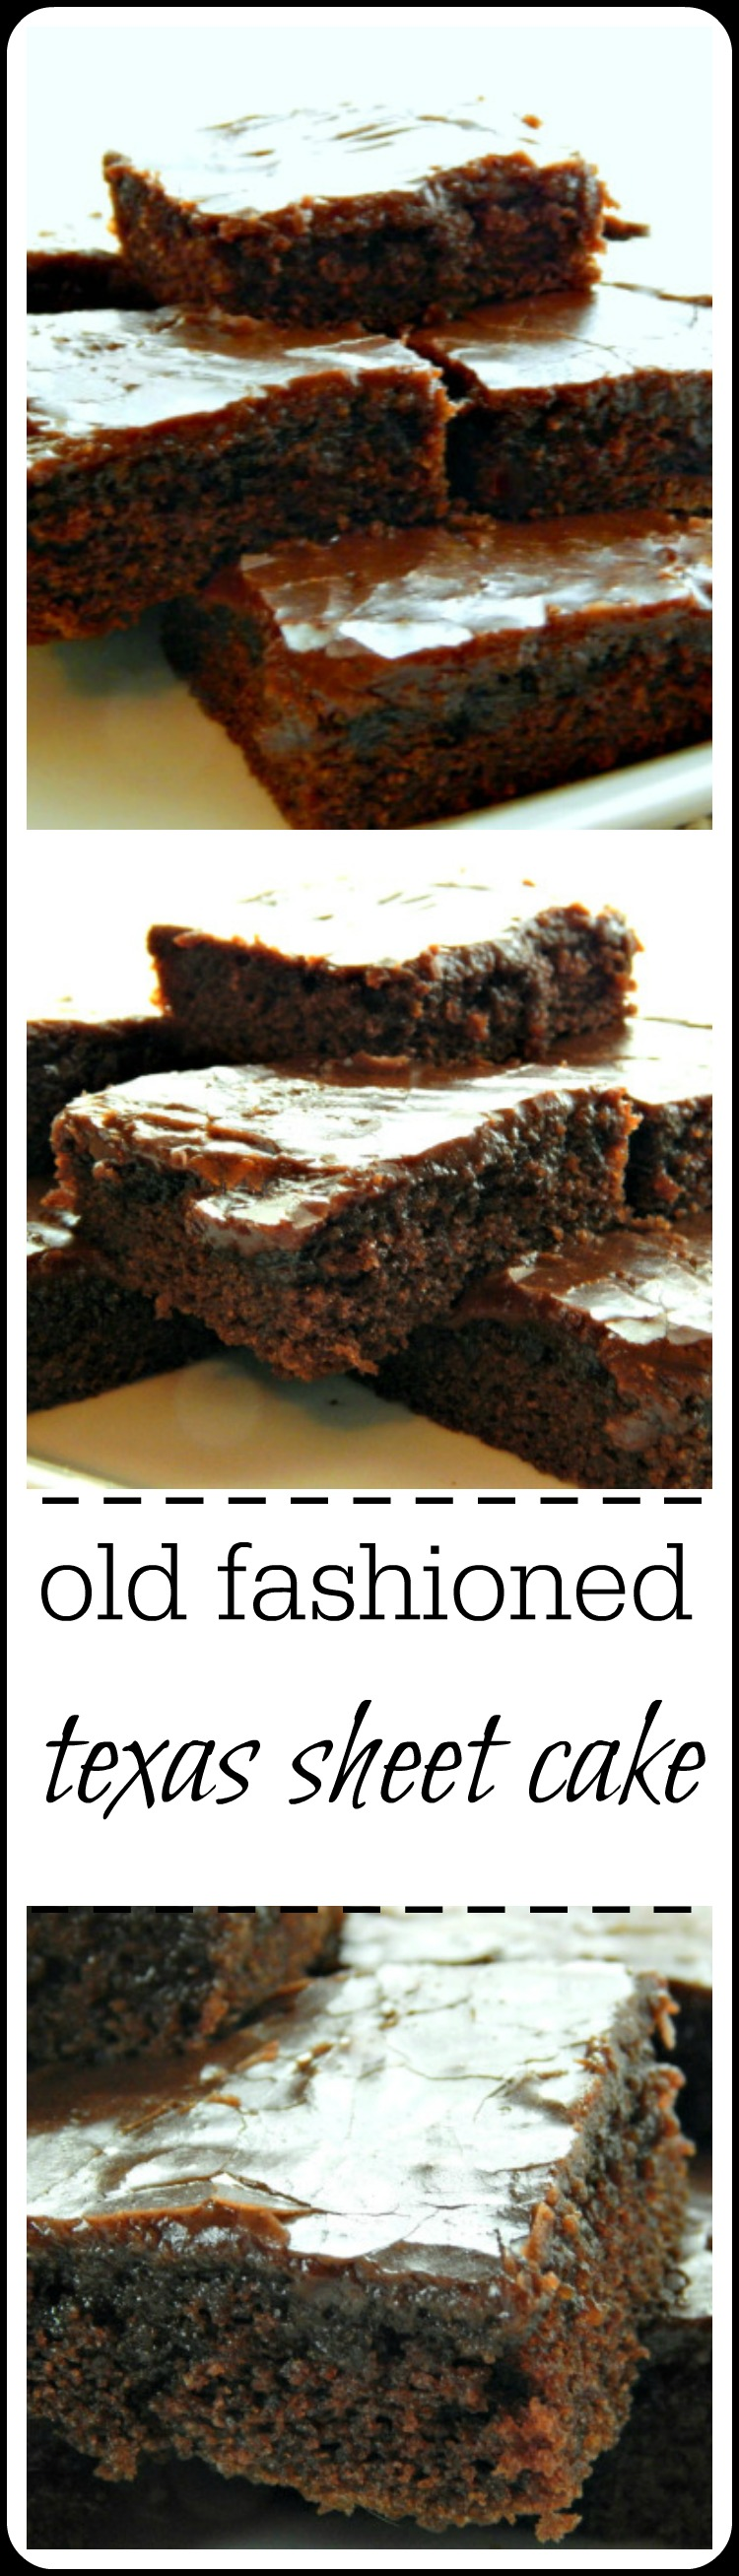 Old Fashioned Texas Sheet Cake - This is an old recipe for the old-fashioned dessert. The cake has the crinkly frosting, the hallmark fudgy layer. It's down-home comfort food that serves a crowd. #TexasSheetCake #ChocolateSheetCake